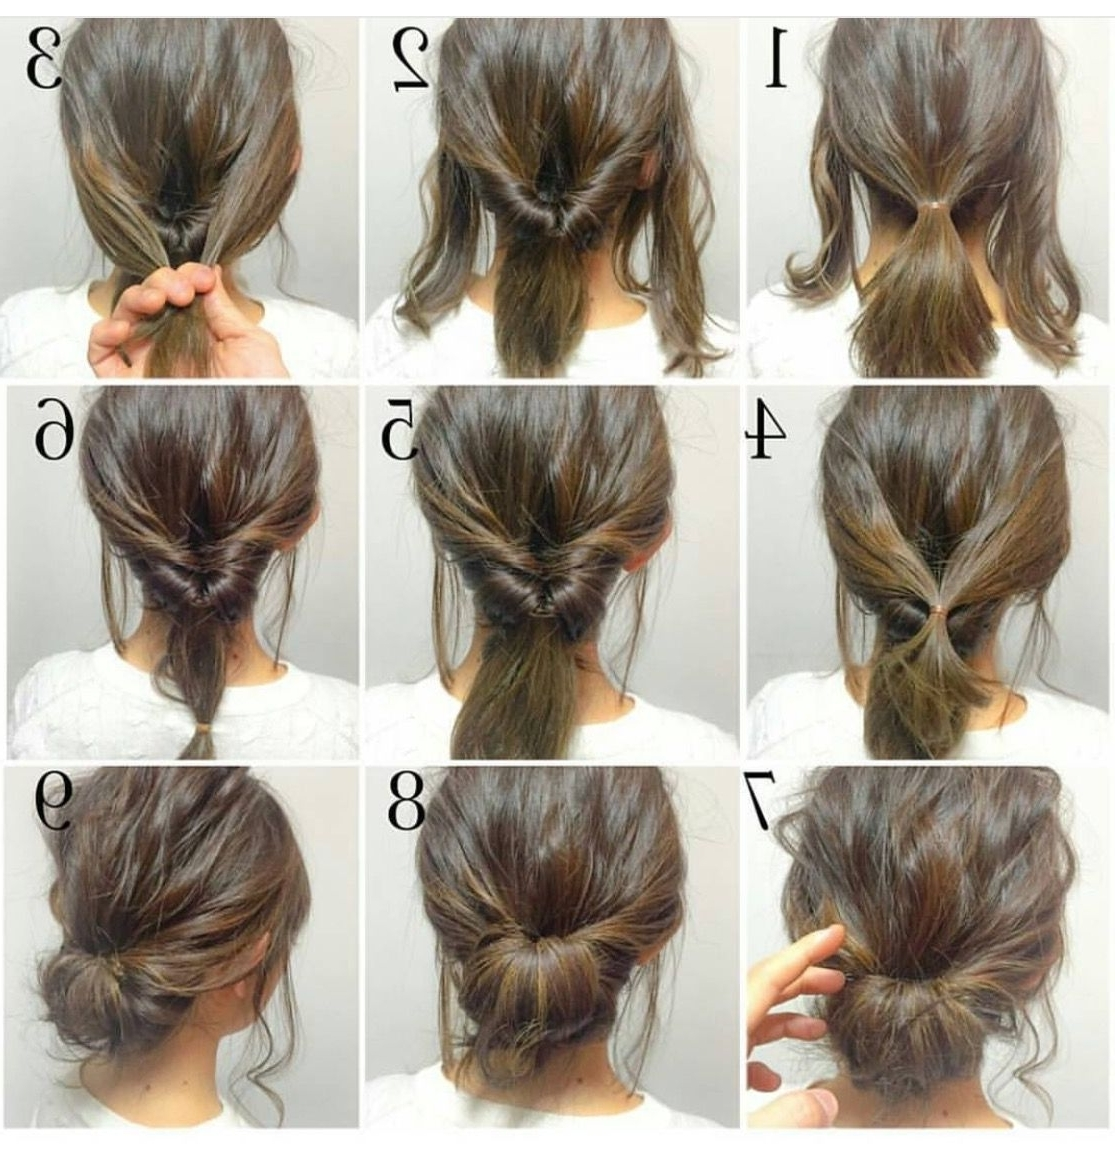 4 Messy Updos For Long Hair | Hairz | Pinterest | Updos, Hair Style Throughout Updo Hairstyles For Long Hair Tutorial (View 4 of 15)